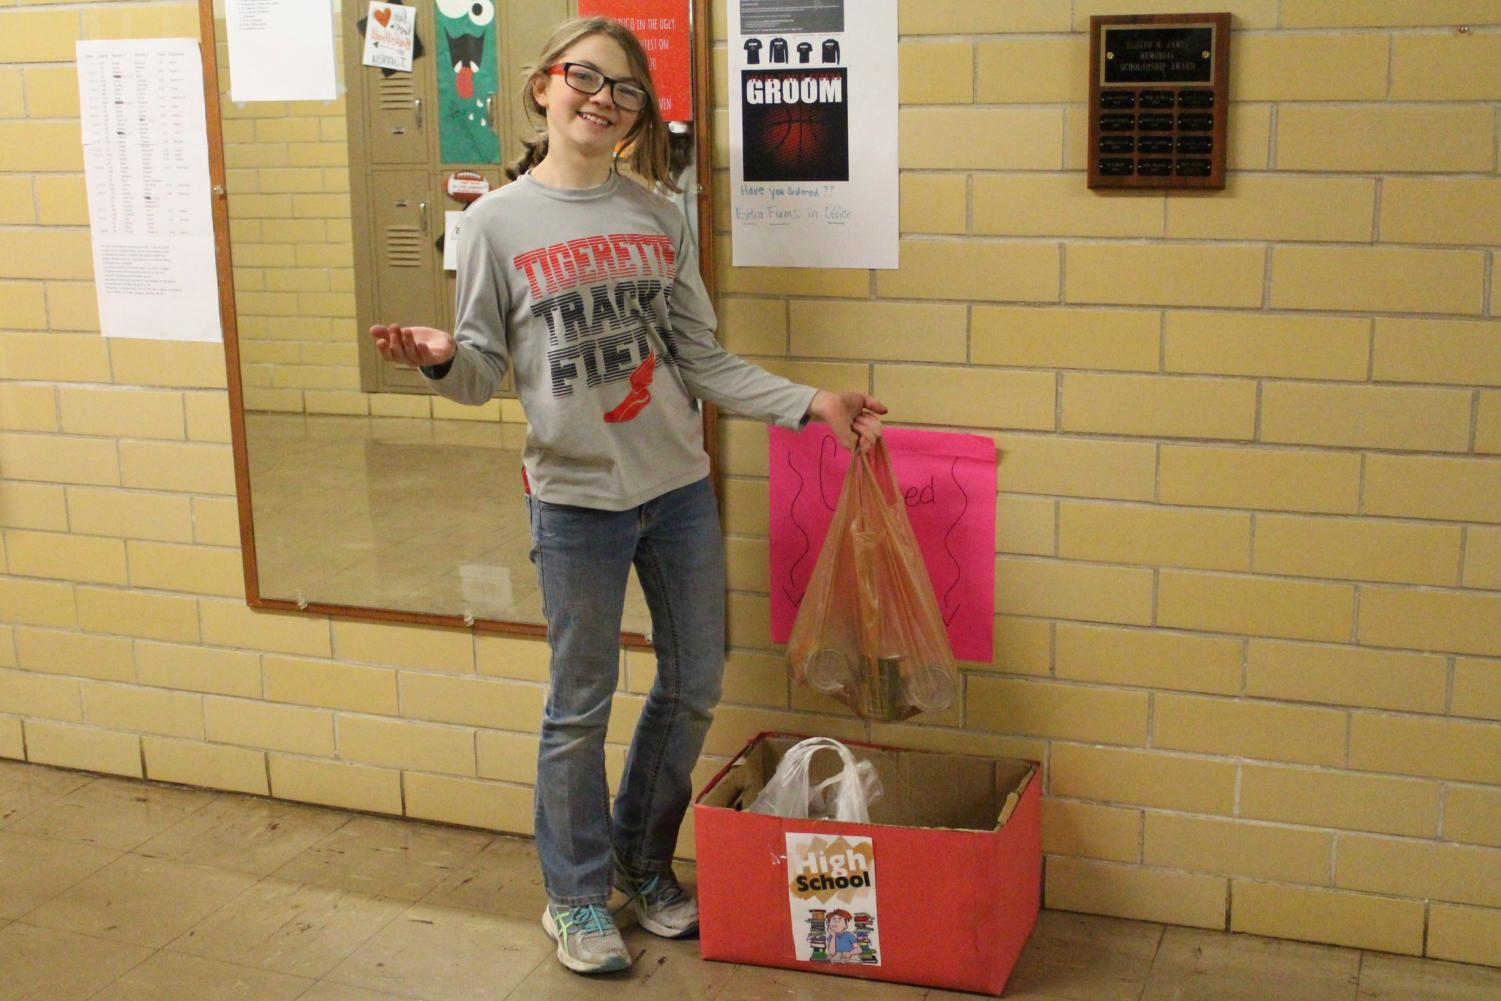 Eighth-grader Sam Short donates a bag of goodies to the canned-food drive. This event, which is being headed by the student council and the National Honor Society, will end Dec. 20. Then, on Dec. 21 the groups will hold a canned-food sculpture contest, and the winner gets a pizza party. All collections will go to the Groom Helping Hands Food Pantry.